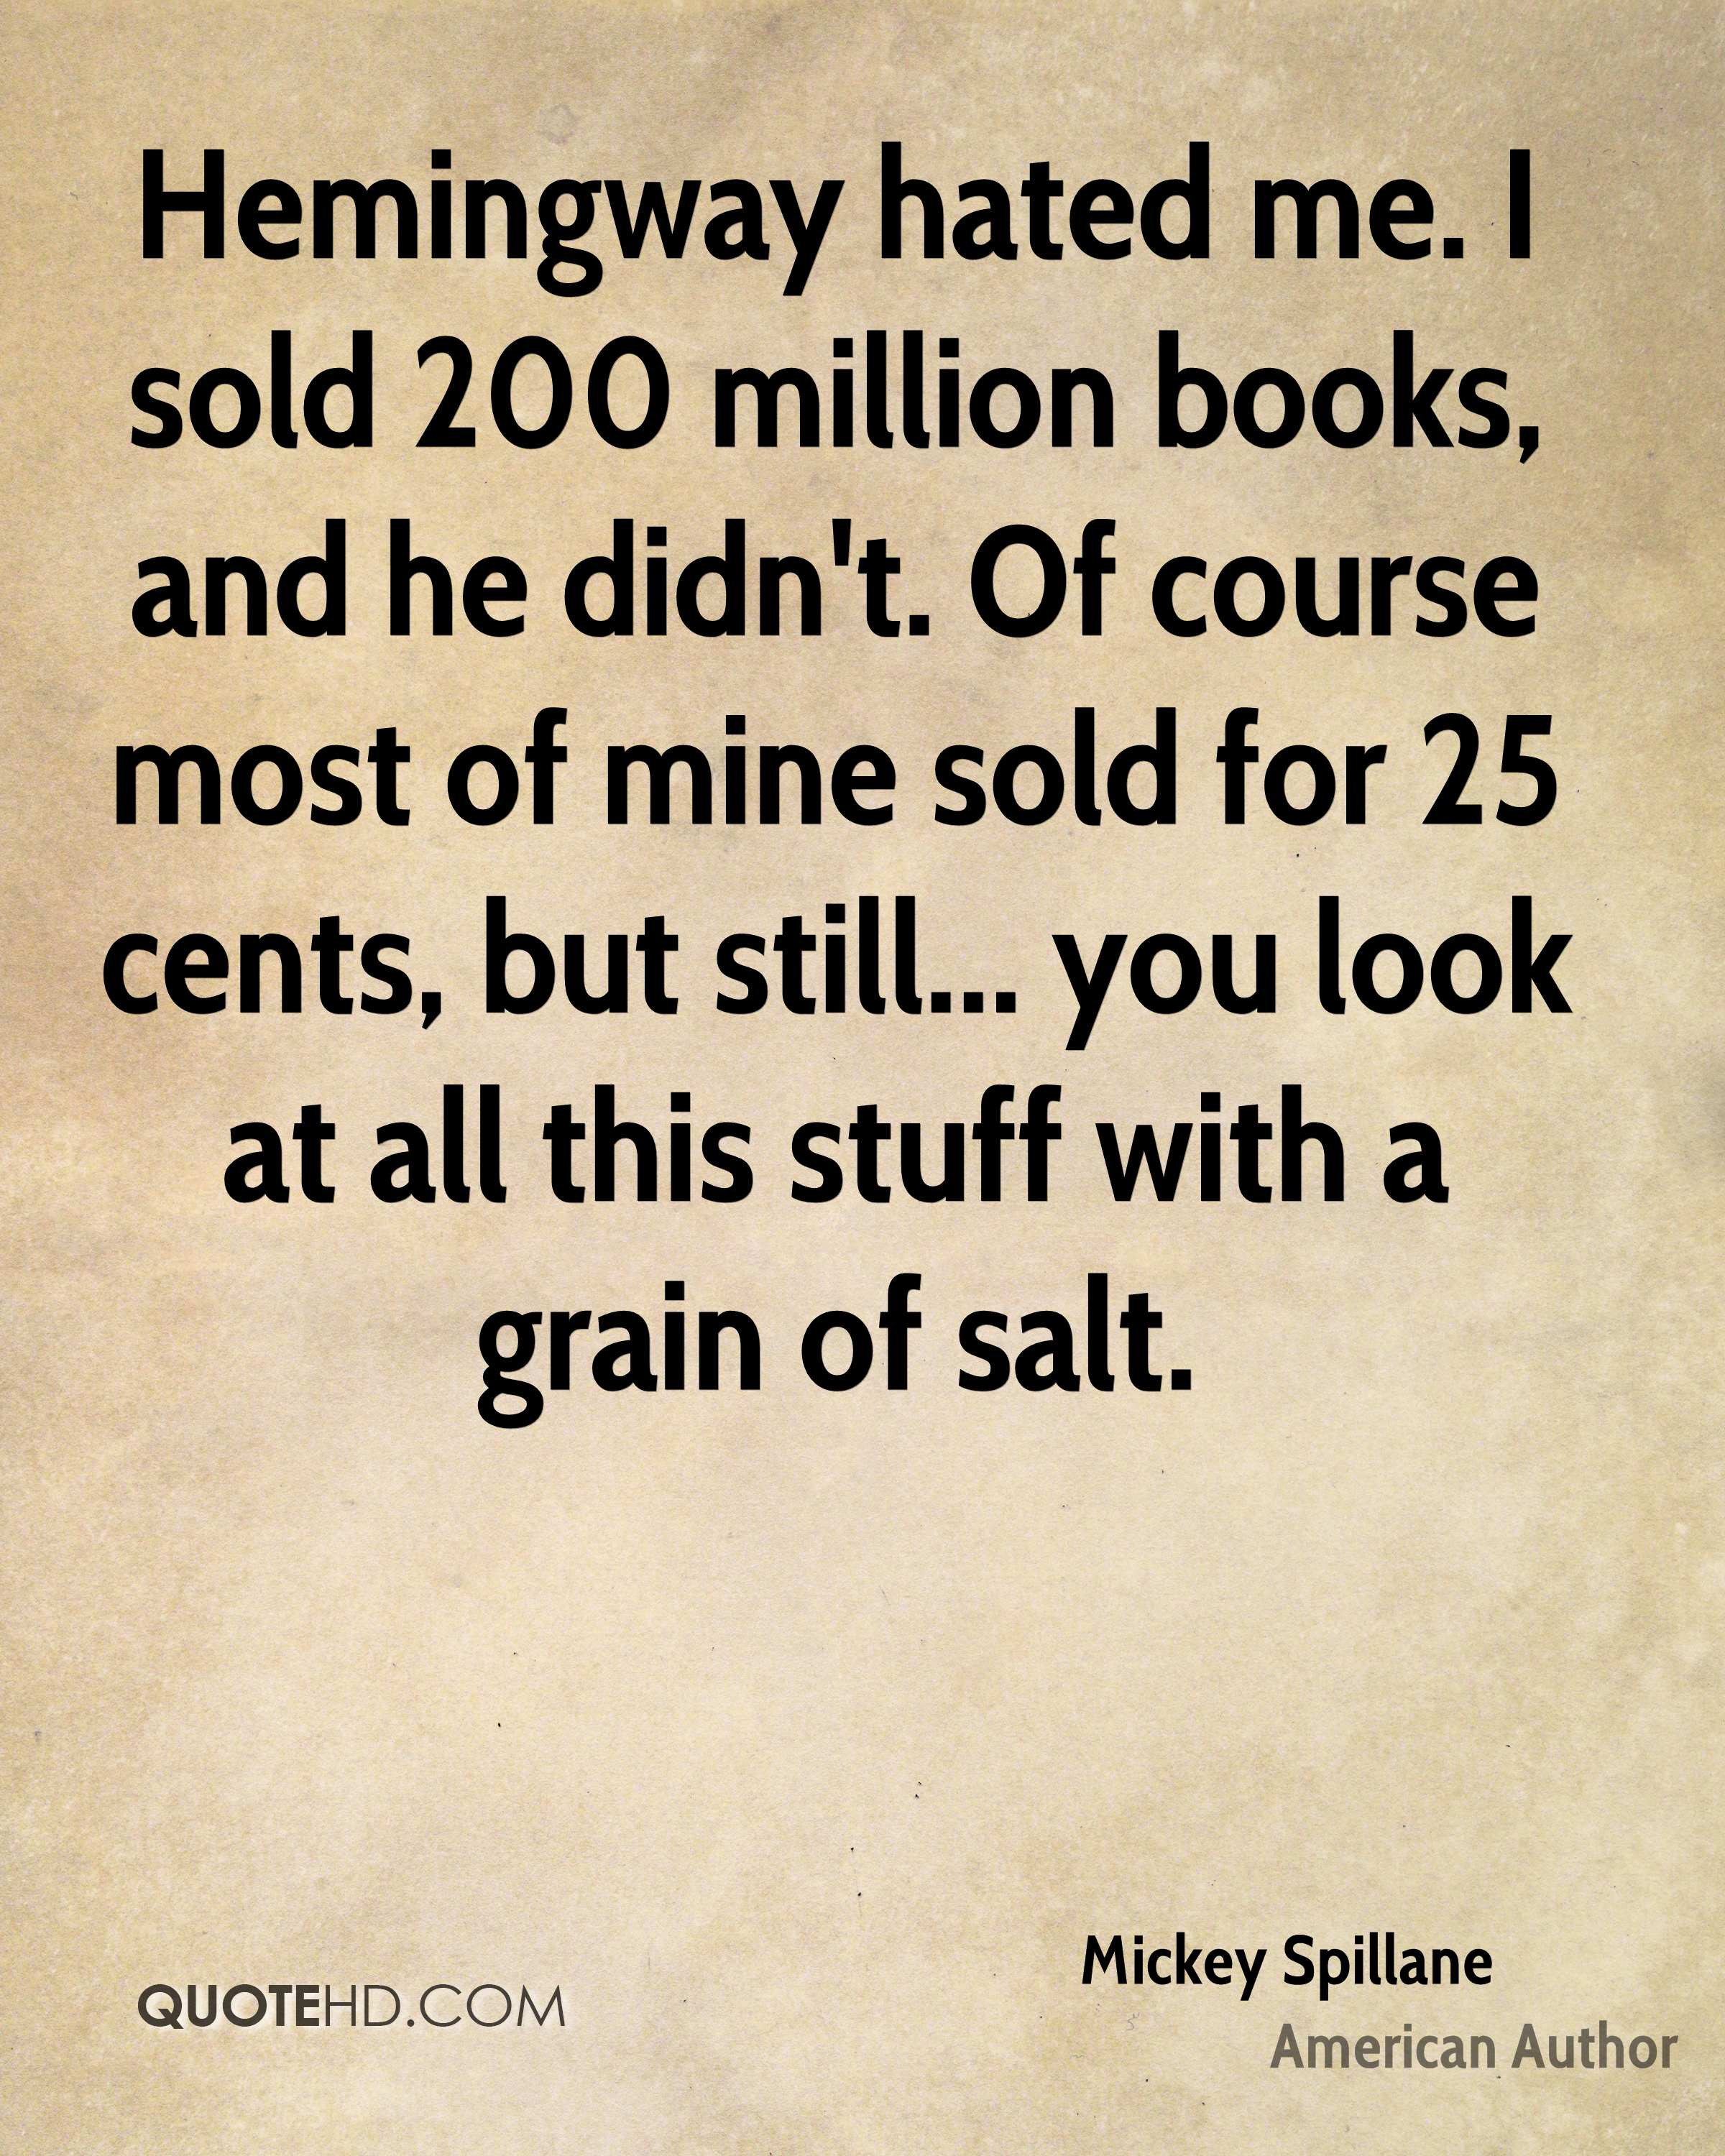 Hemingway hated me. I sold 200 million books, and he didn't. Of course most of mine sold for 25 cents, but still... you look at all this stuff with a grain of salt.